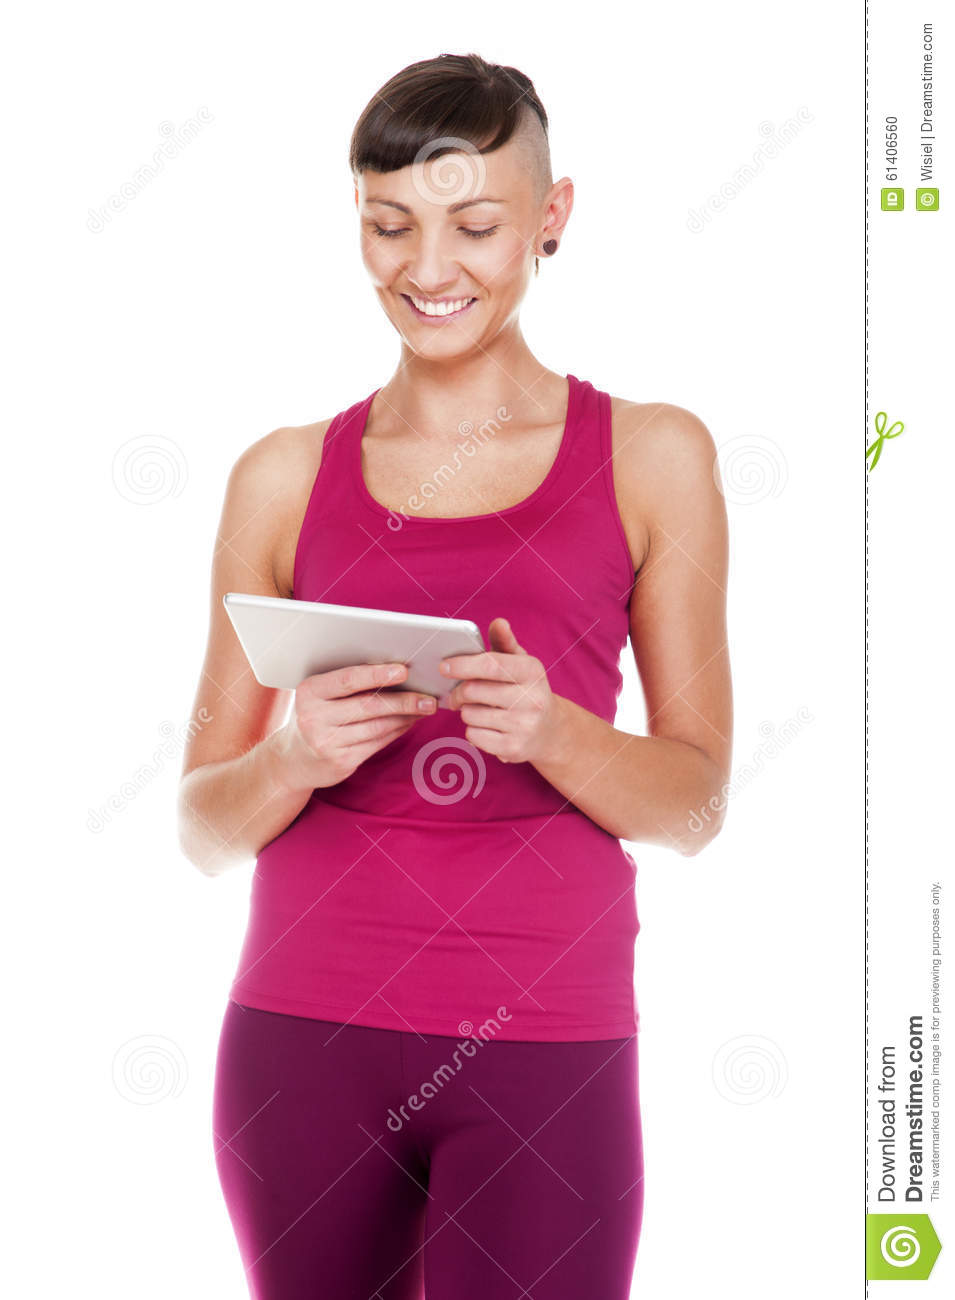 Portriat of woman with tablet, Isolated on white background. Smiling.